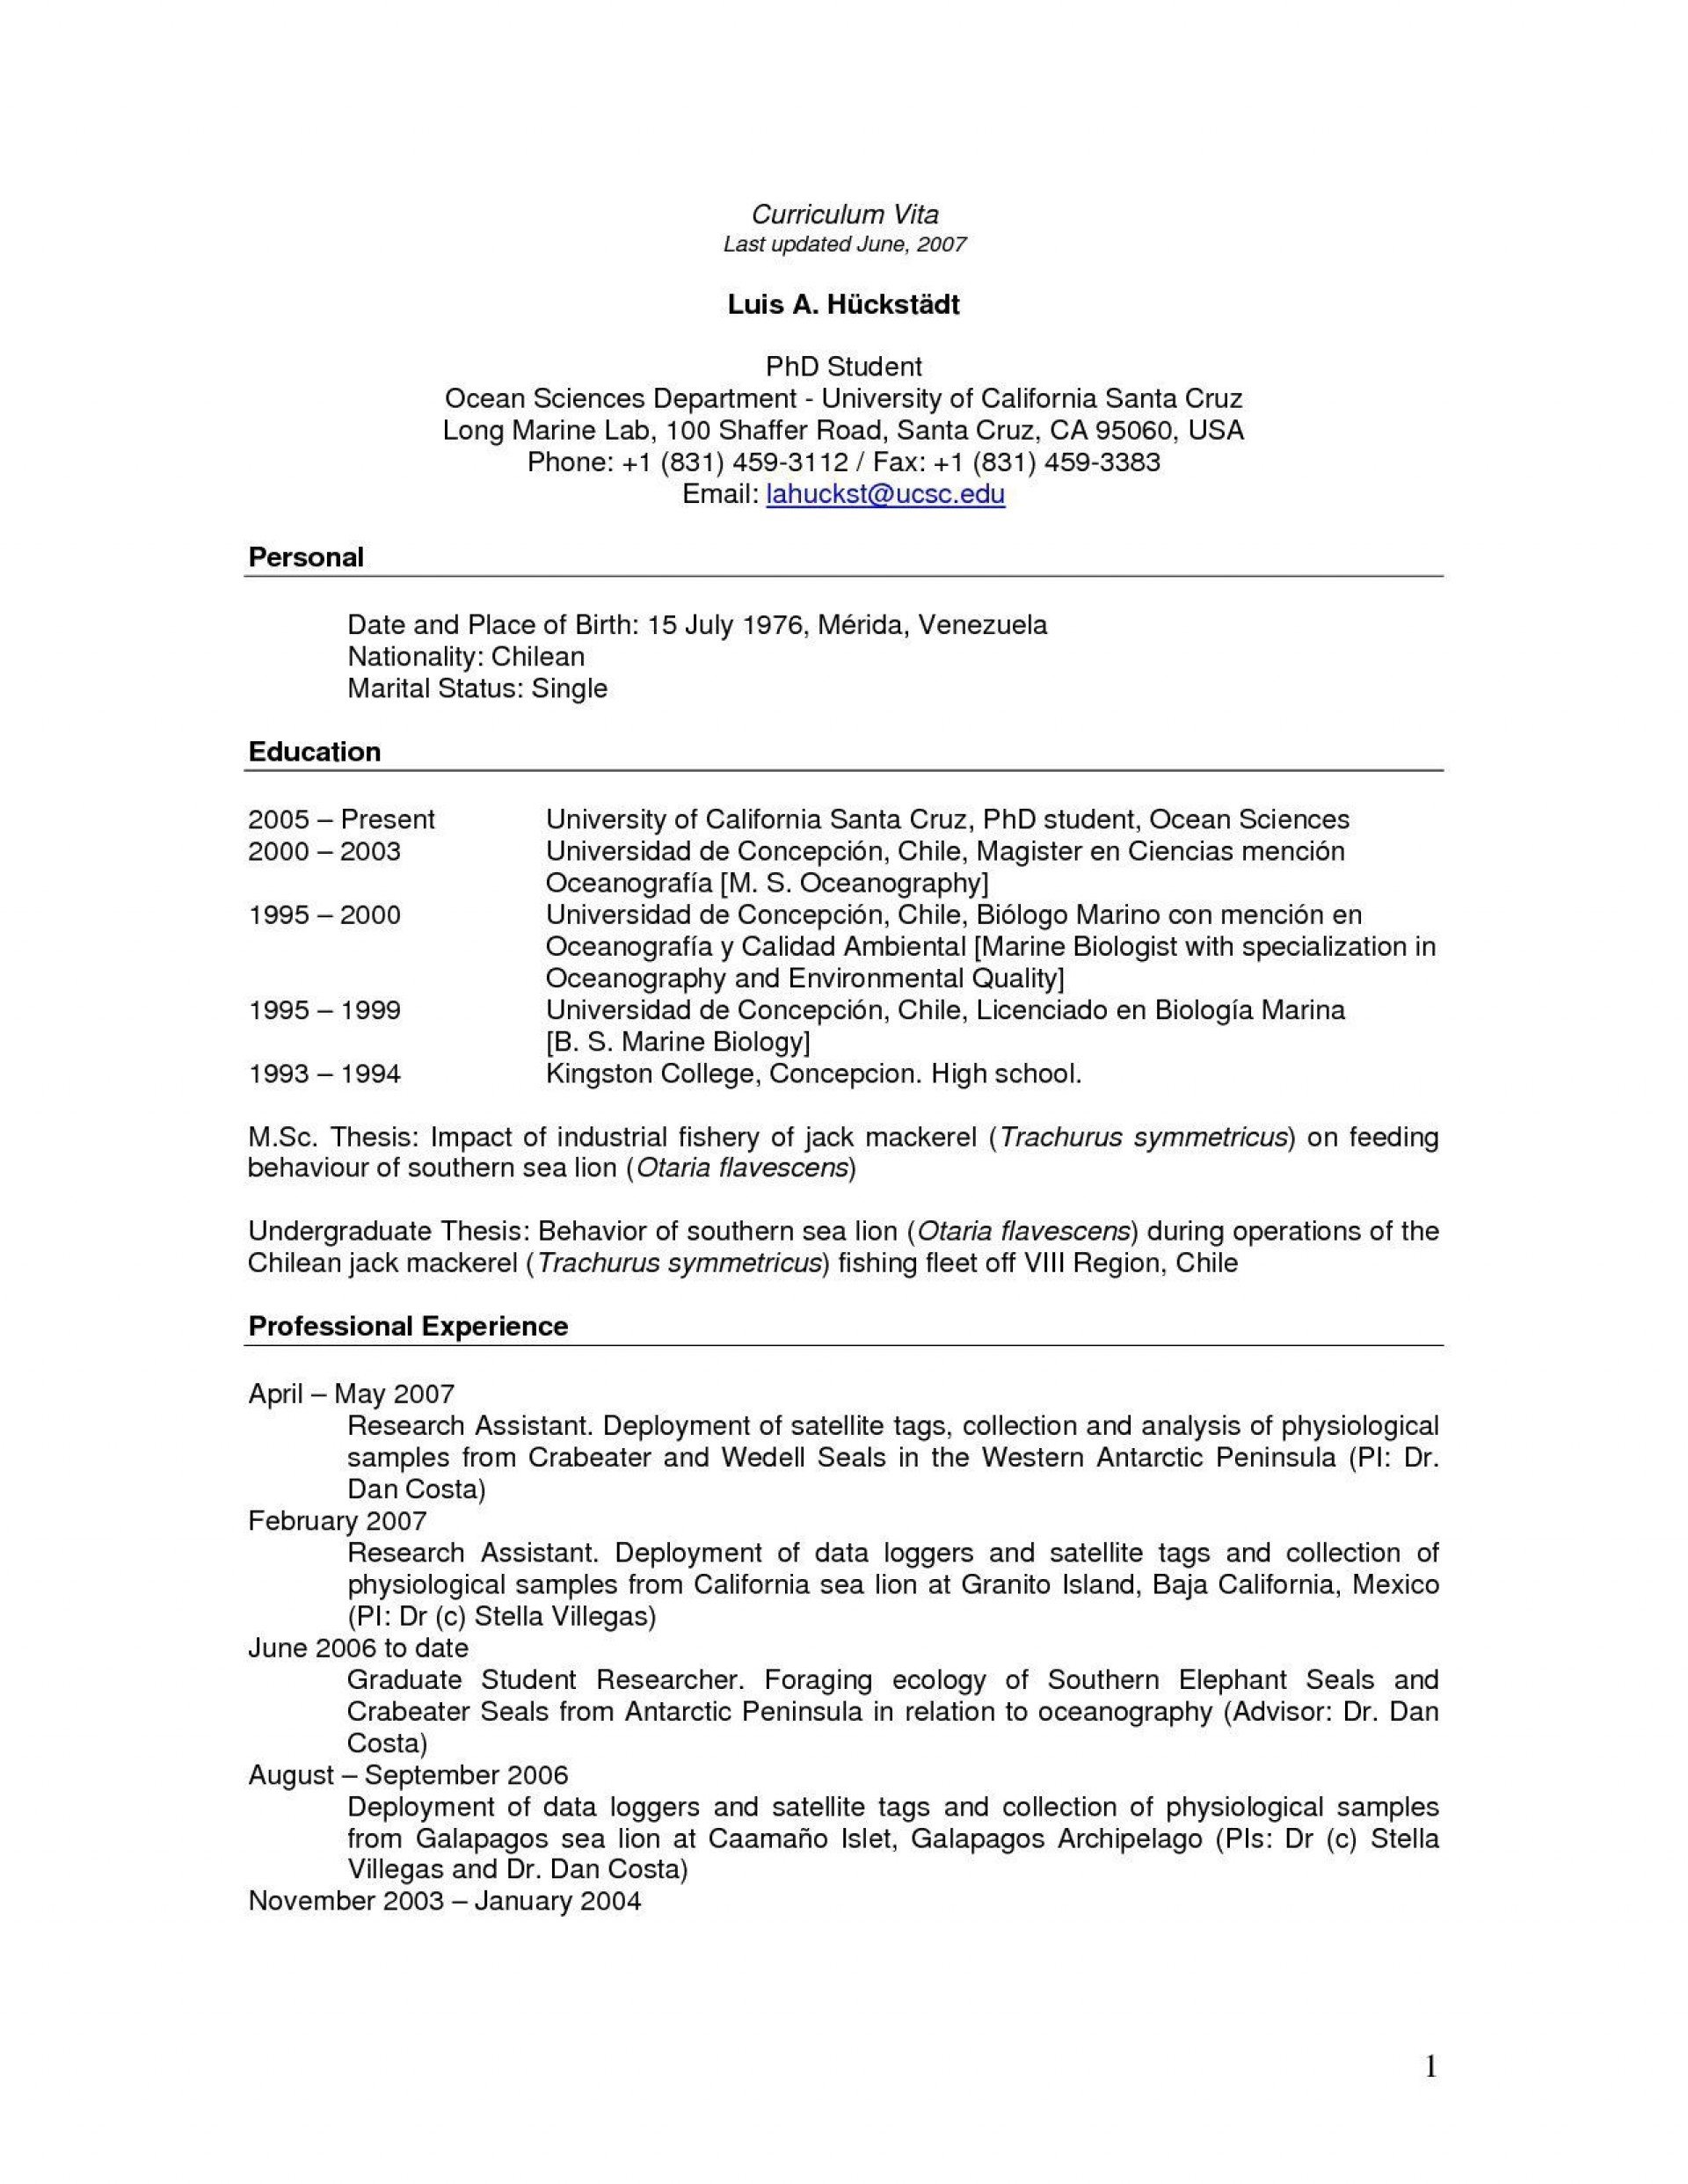 005 Remarkable Graduate School Curriculum Vitae Template Photo  For Application Resume Format1920